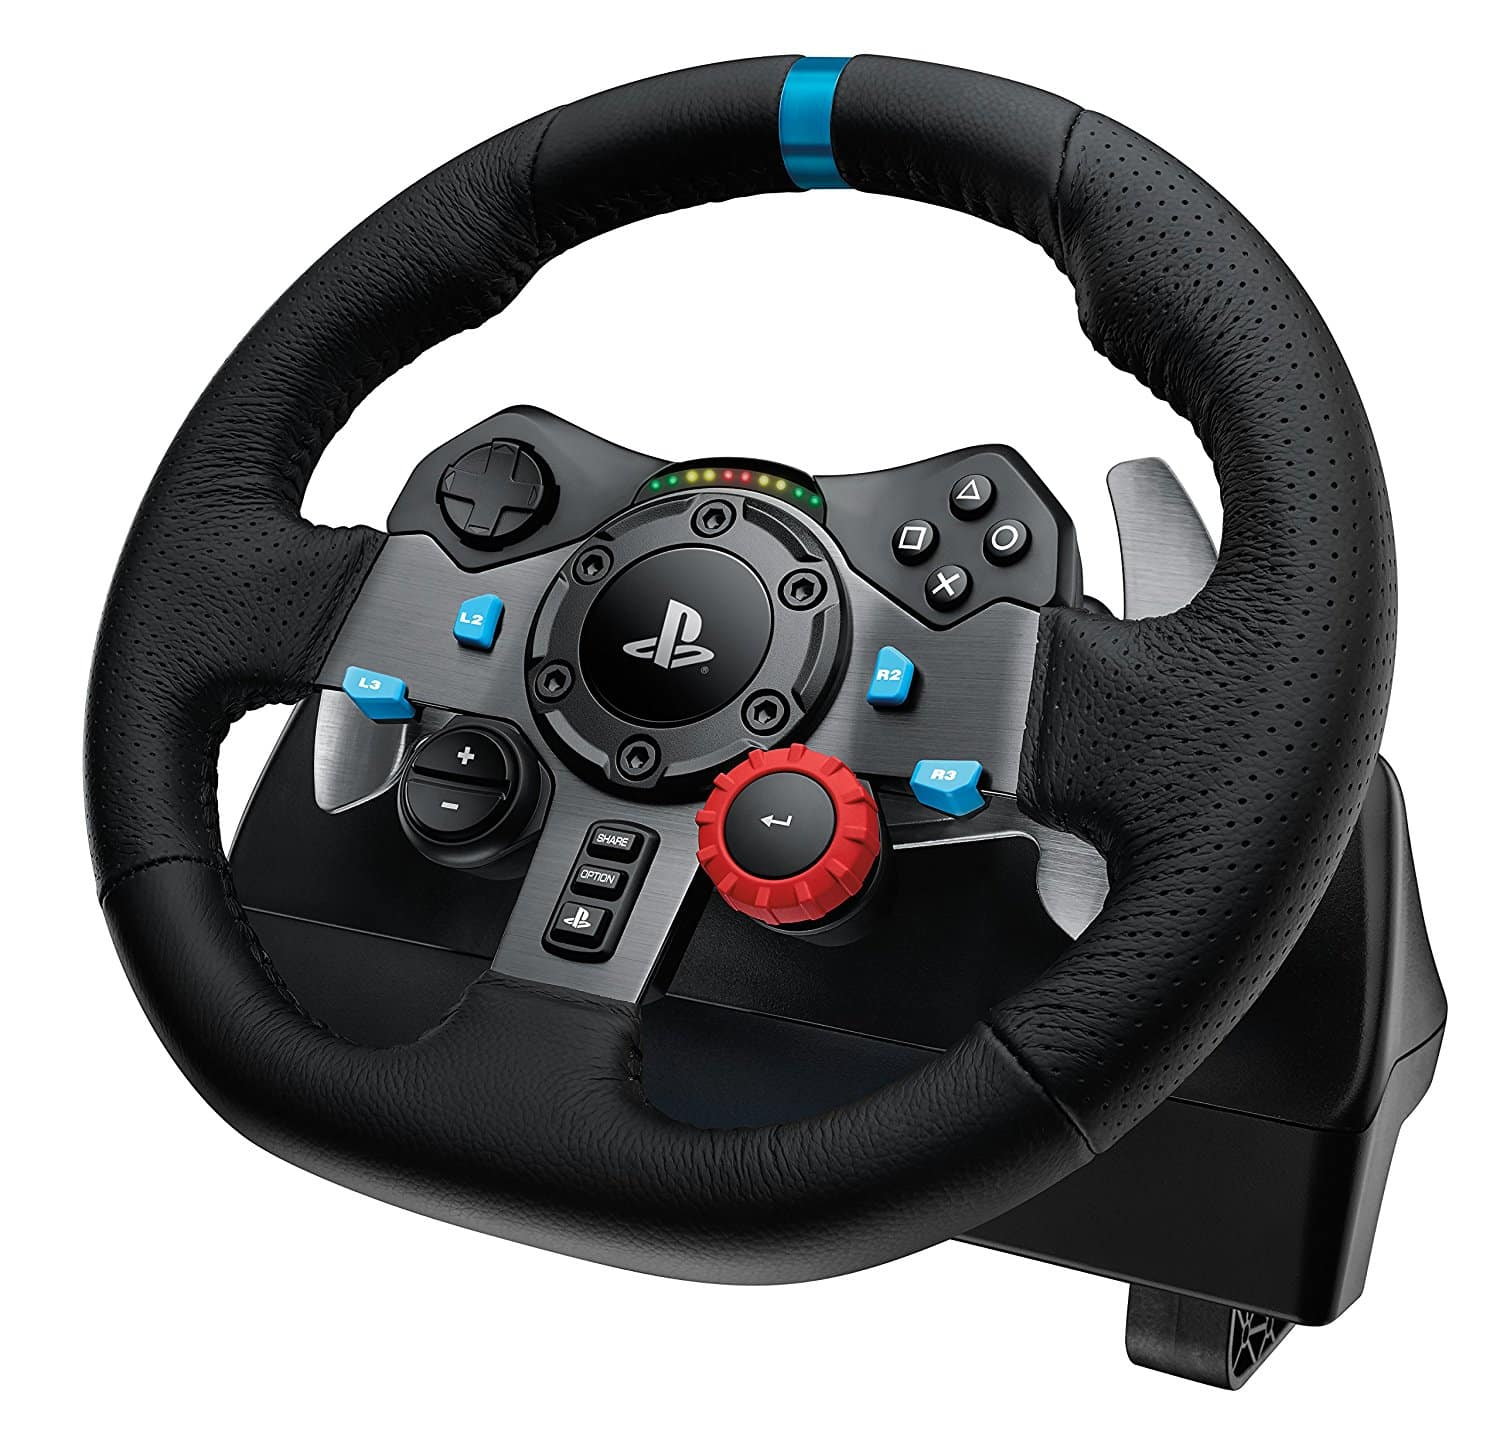 c26835e0161 The Best PS4 Steering Wheel And Pedals In 2019 [Logitech G29 Review]